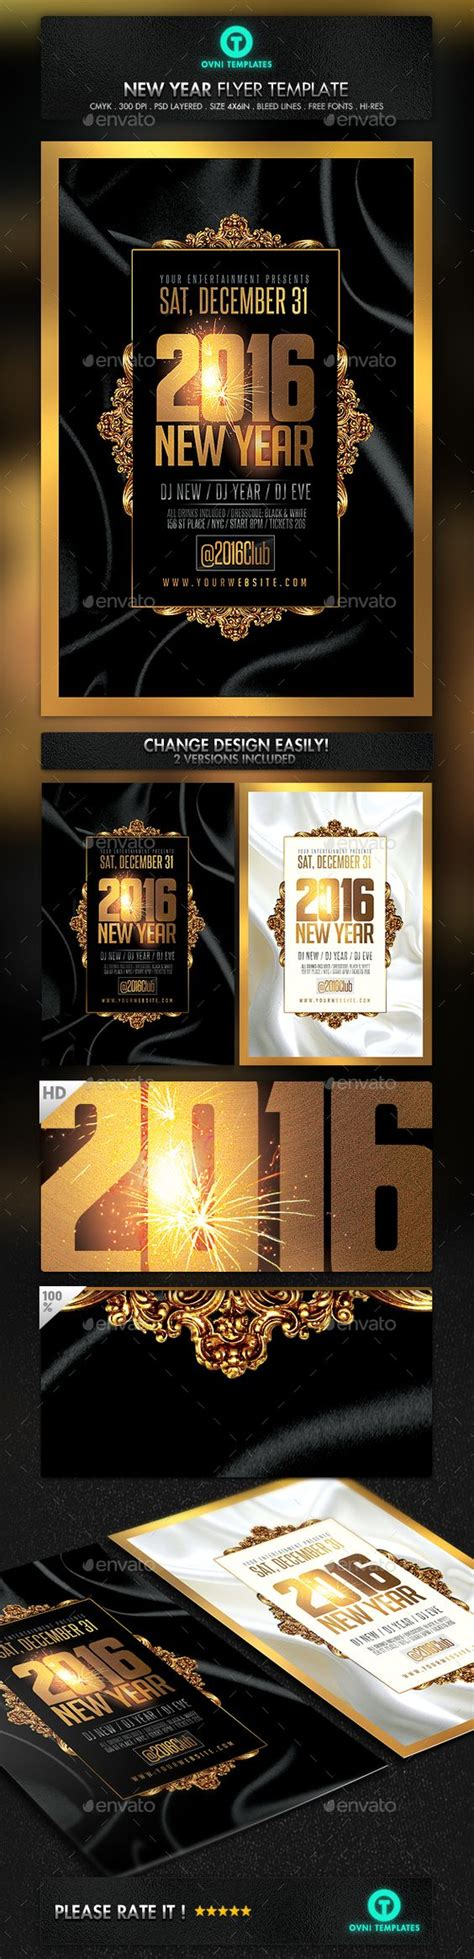 New Year Gold Luxury Flyer Template Flyer Template Year 2016 And New Year S Graphicriver Iii Flyer Template